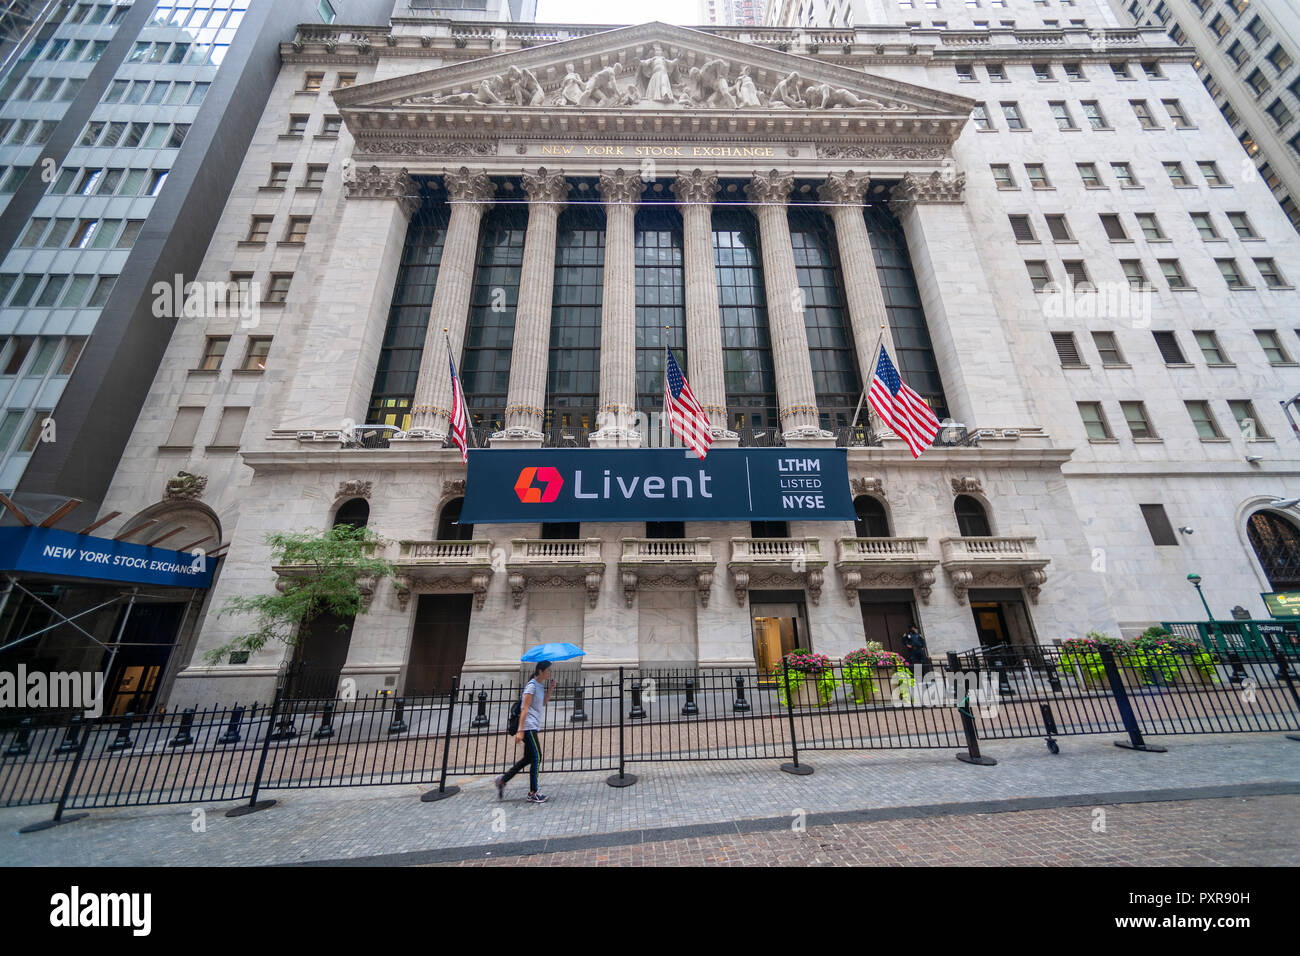 The New York Stock Exchange in Lower Manhattan in New York on Thursday, October 11, 2018 is decorated with a banner for the Livent initial public offering. Livent is a producer of the chemical lithium hence the listing 'LTHM' on the exchange. (© Richard B. Levine) - Stock Image